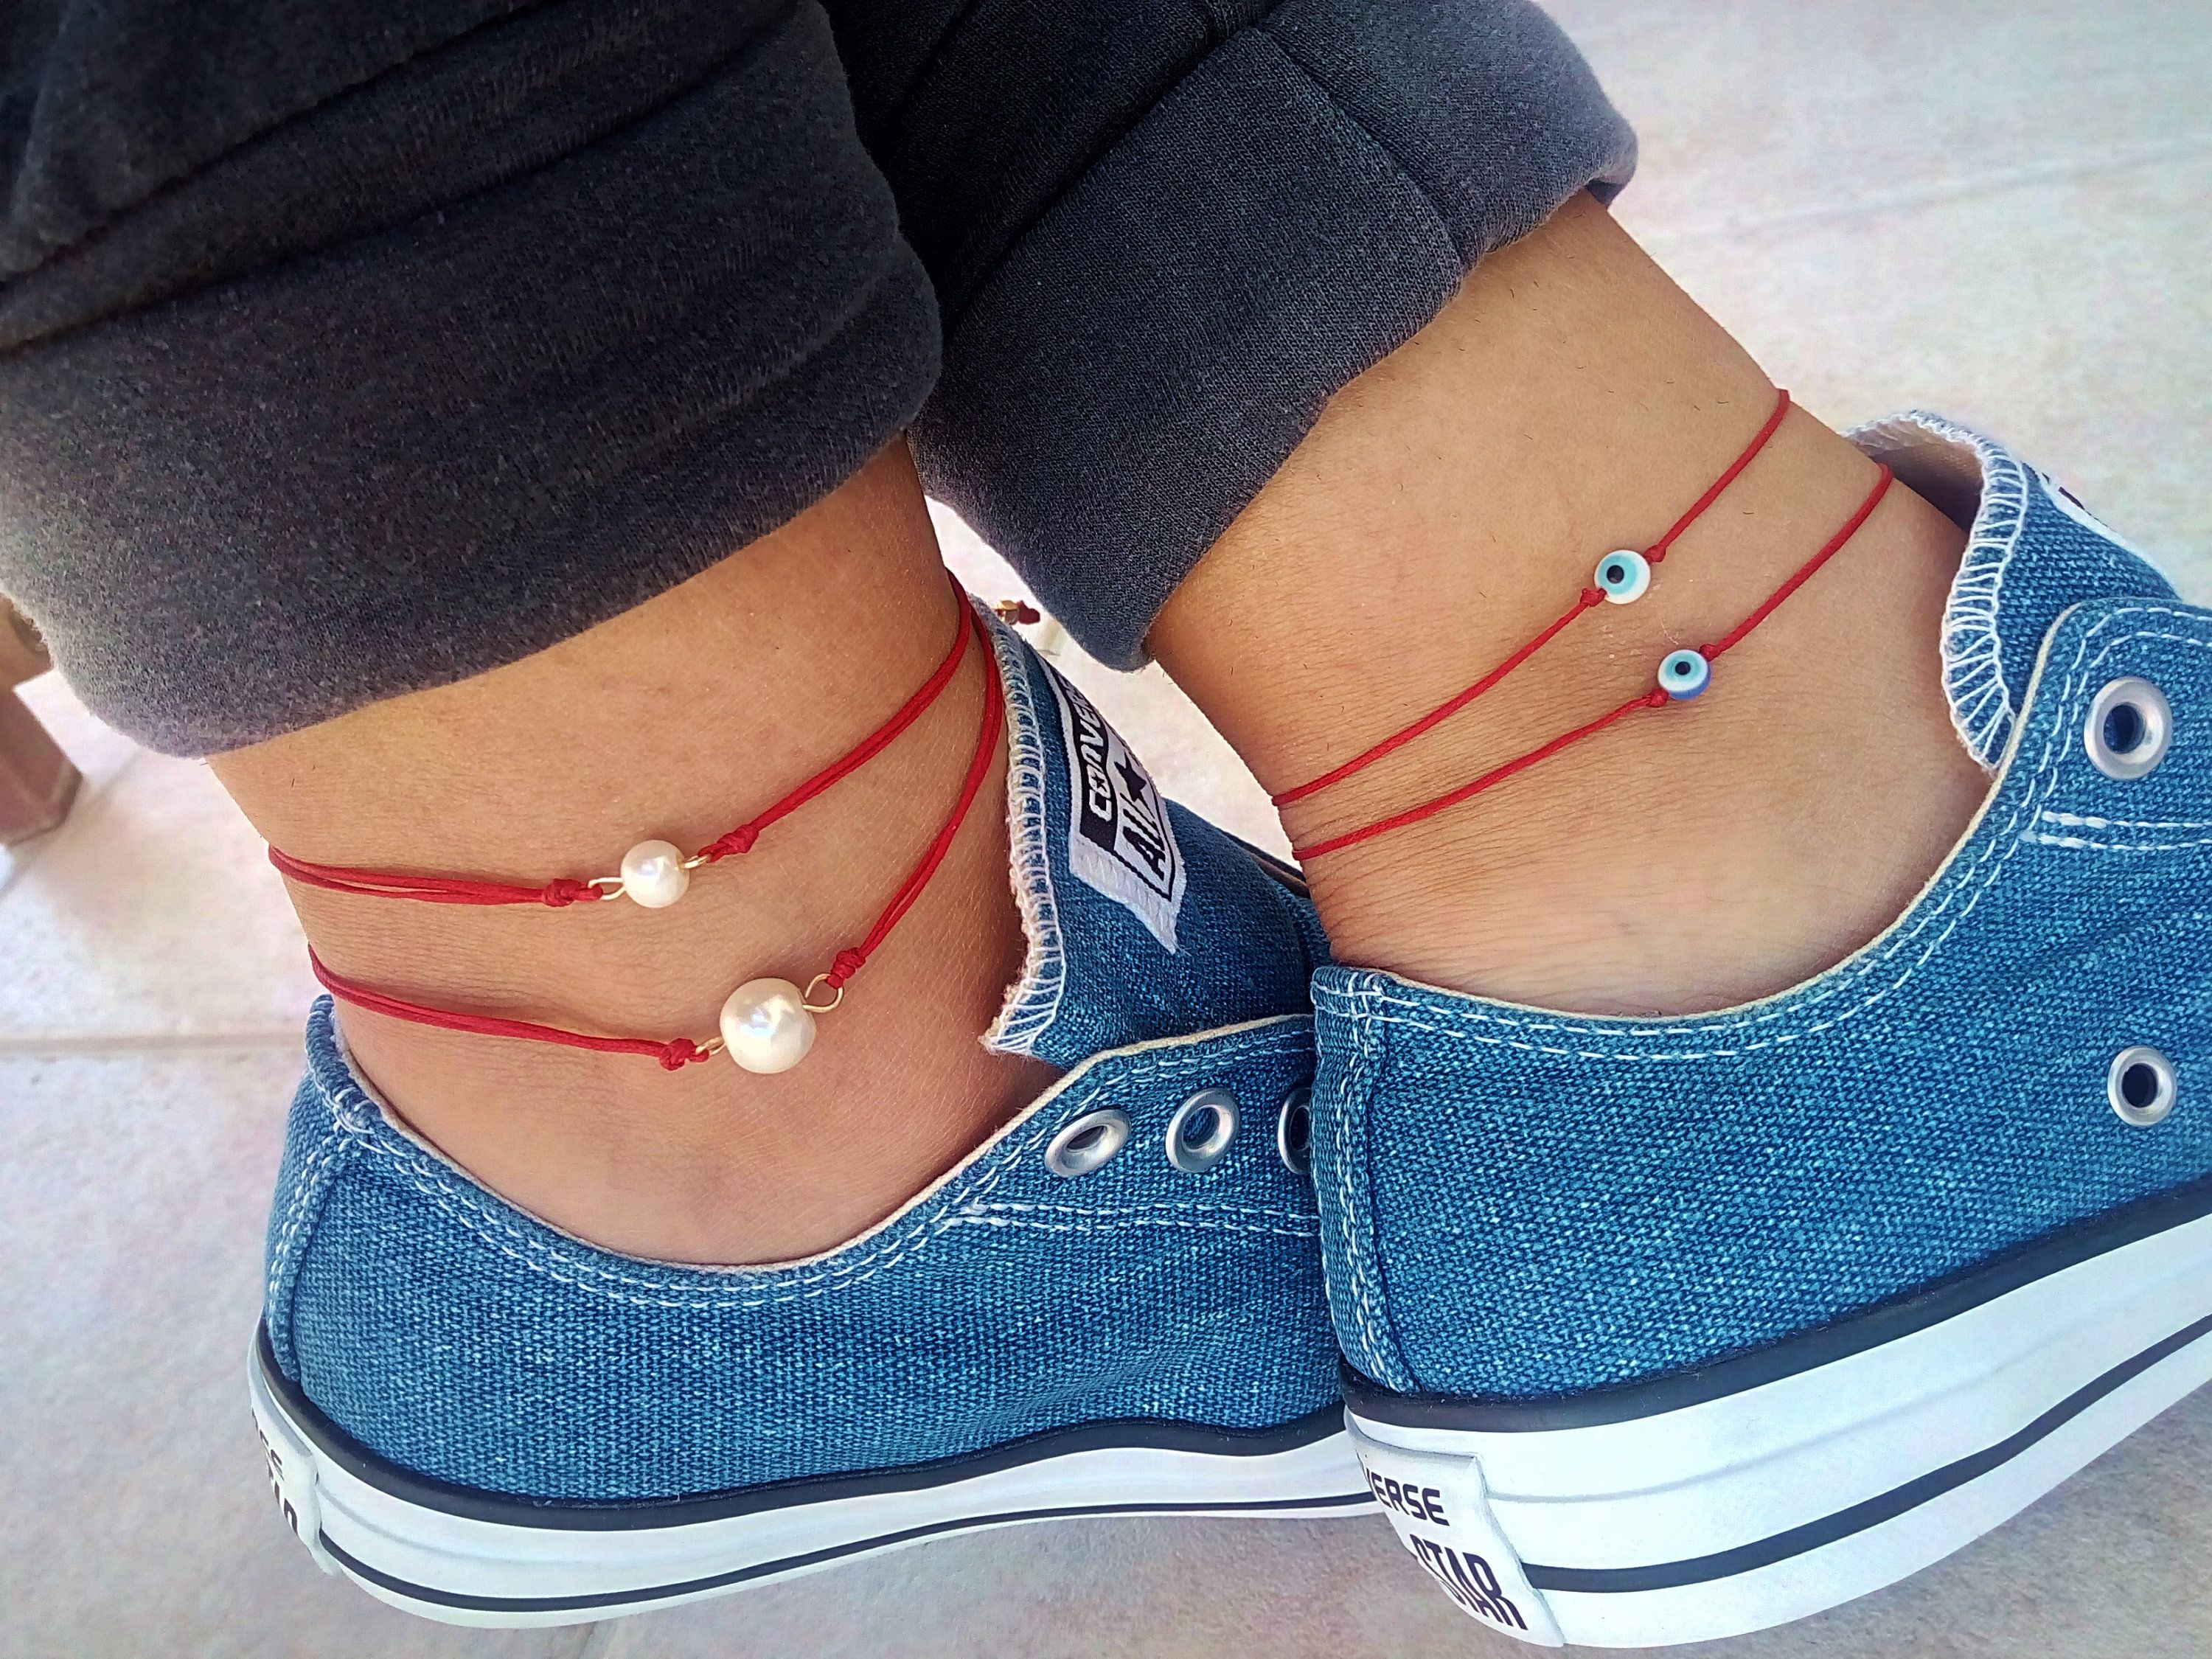 red jewelry the bracelet animal product do fish adjustable design year bracelets string anklet with good charity